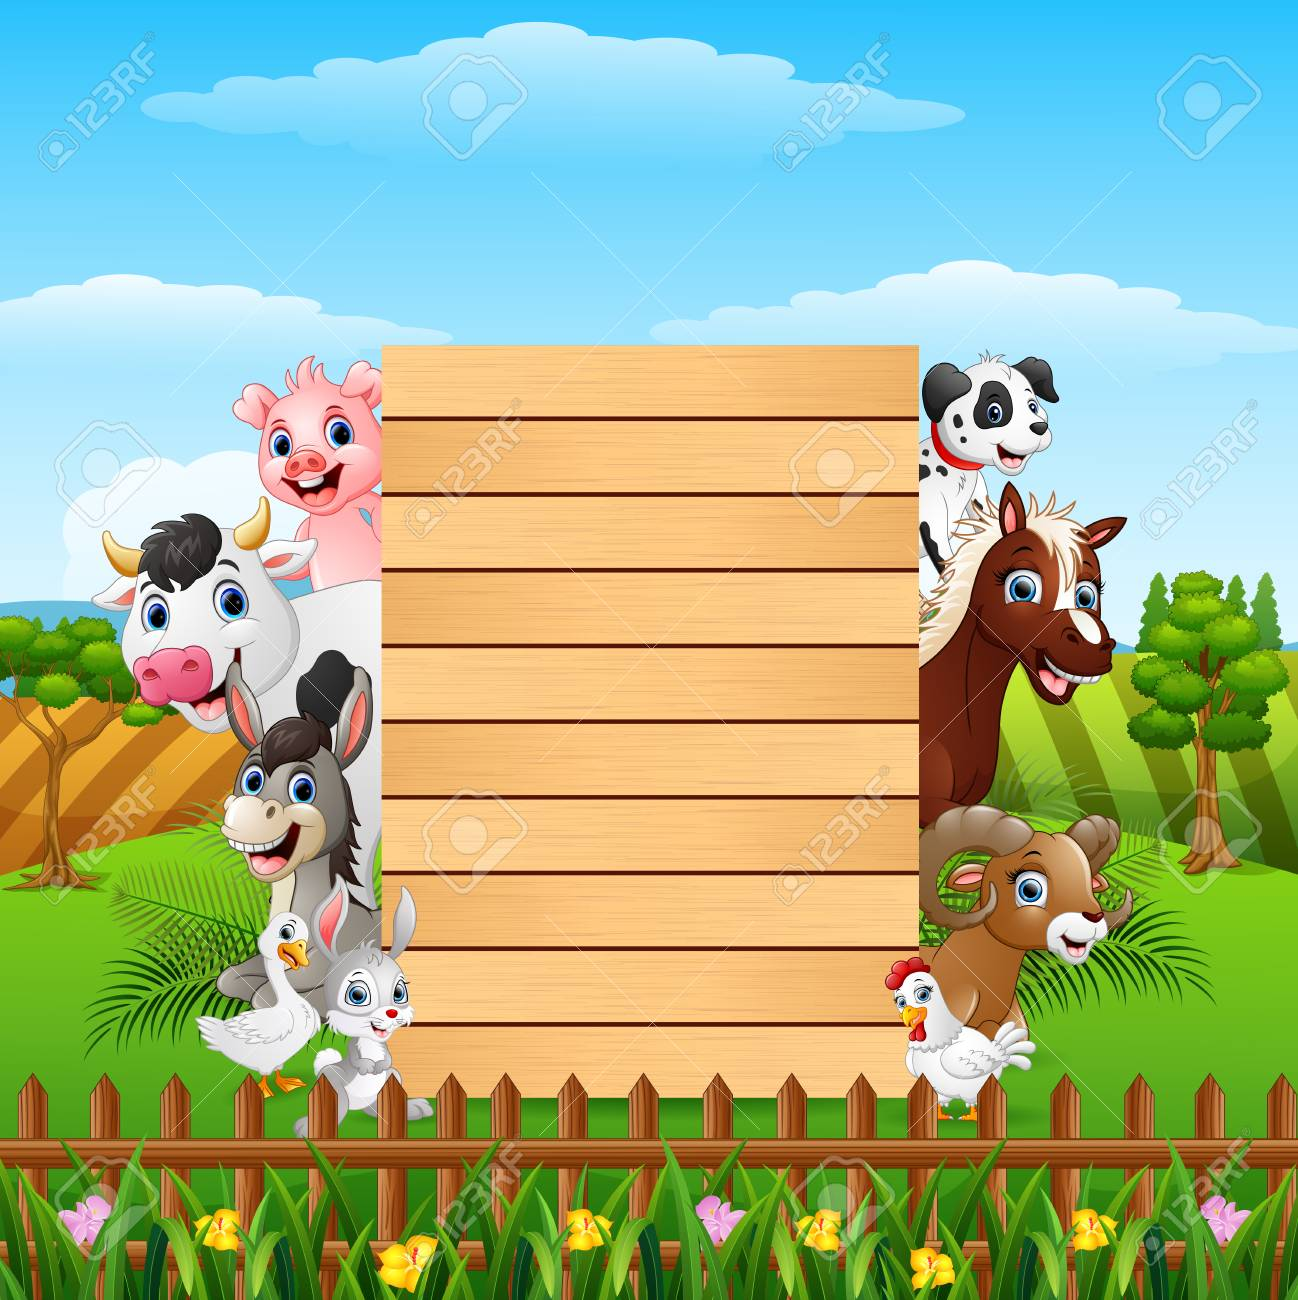 animals farm with a blank sign wood board royalty free cliparts